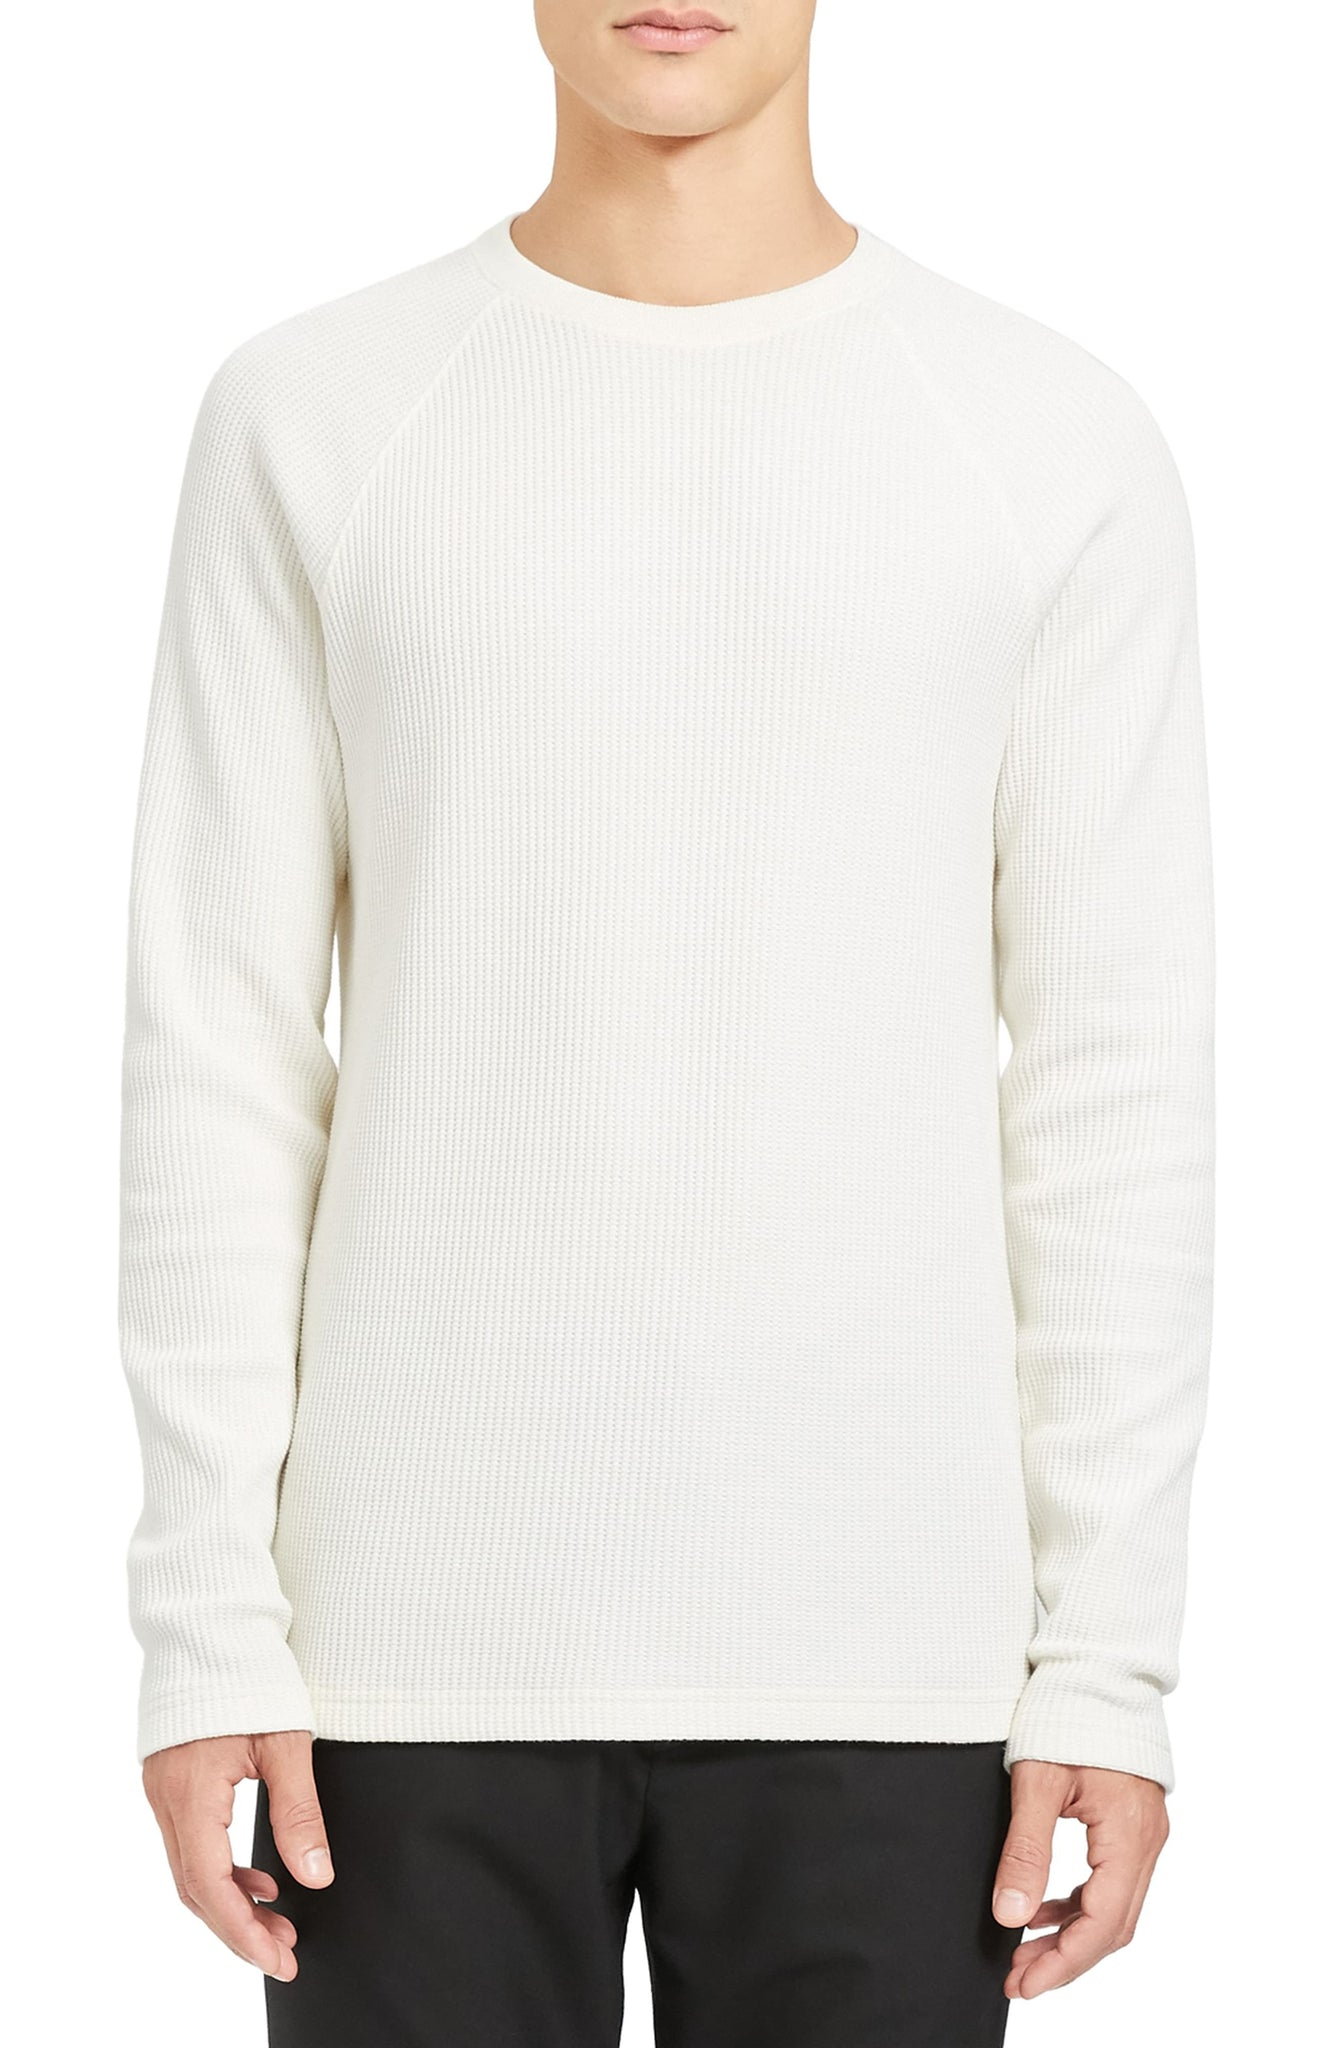 Theory River Thermal Stitch Long Sleeve Shirt White